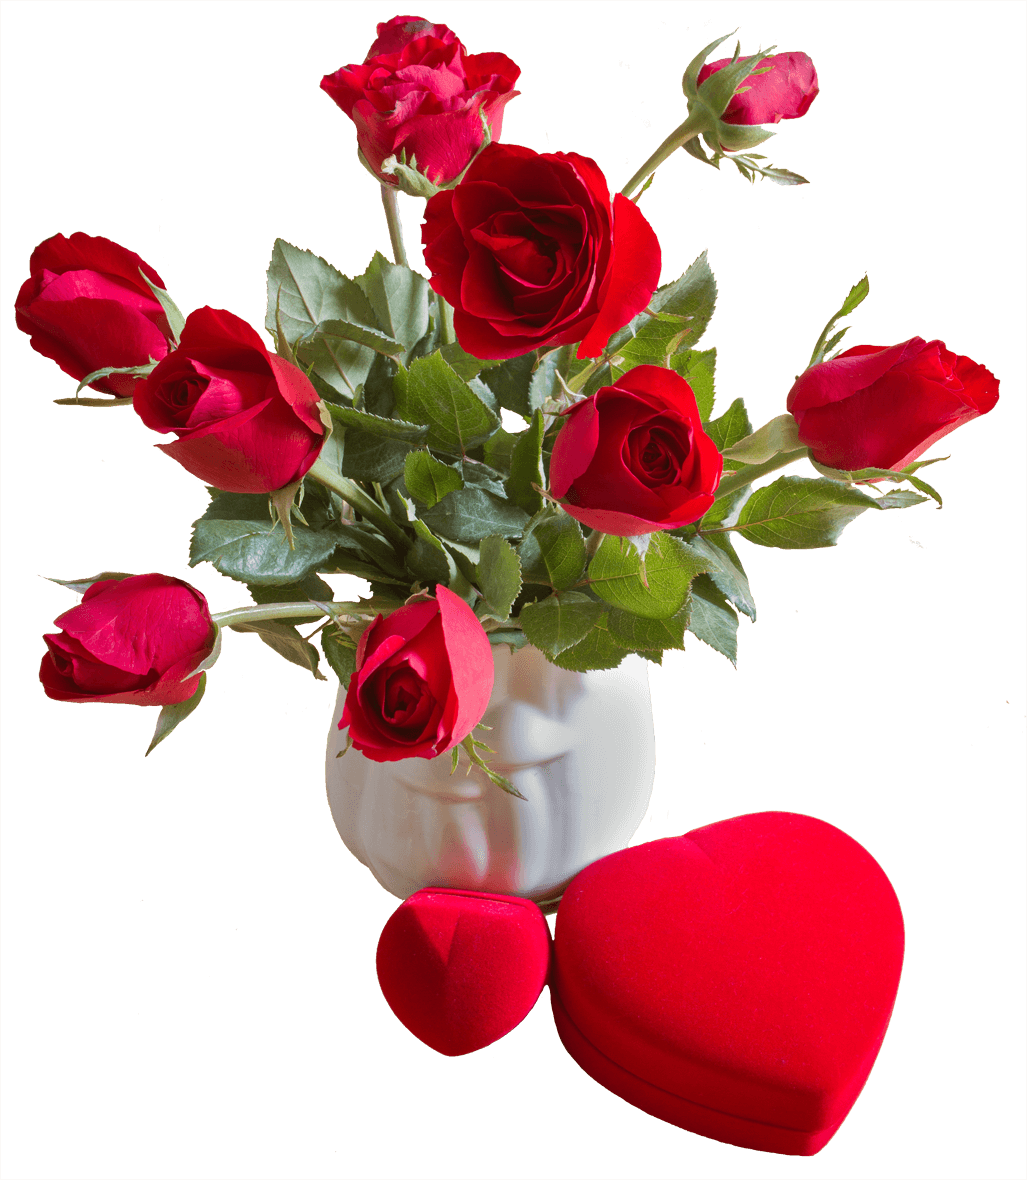 www.freepik.com/free-photo/background-petal-gift-red-bouquet_1047489.htm